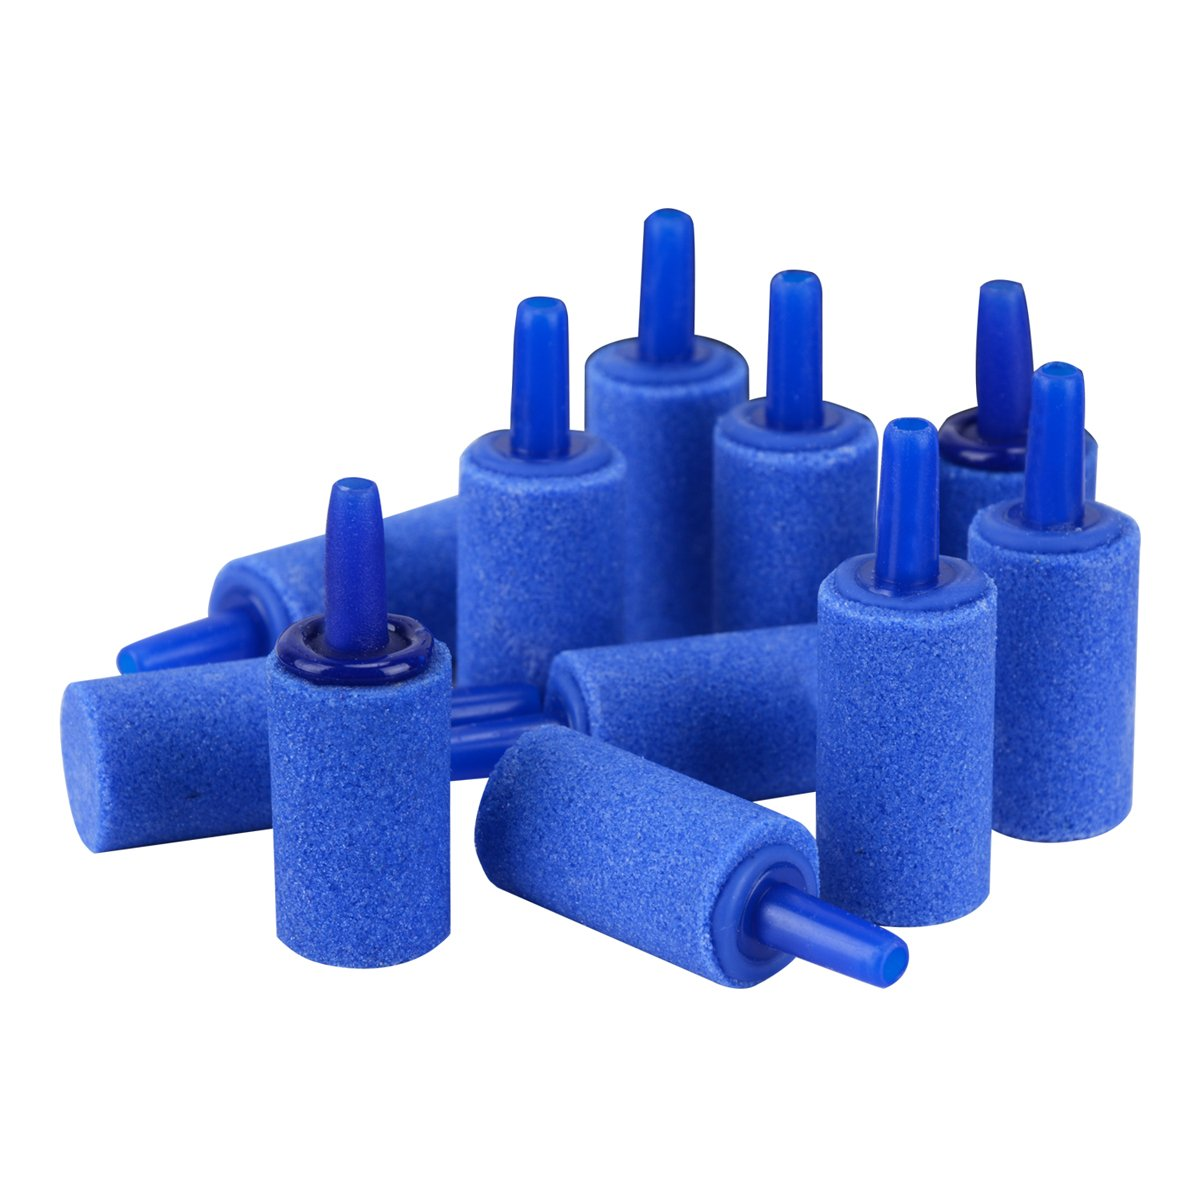 (12 PCS 1 ) Pawfly Air Stones Cylinder Bubble Diffuser Airstones for Aquarium Fish Tank Pump bluee